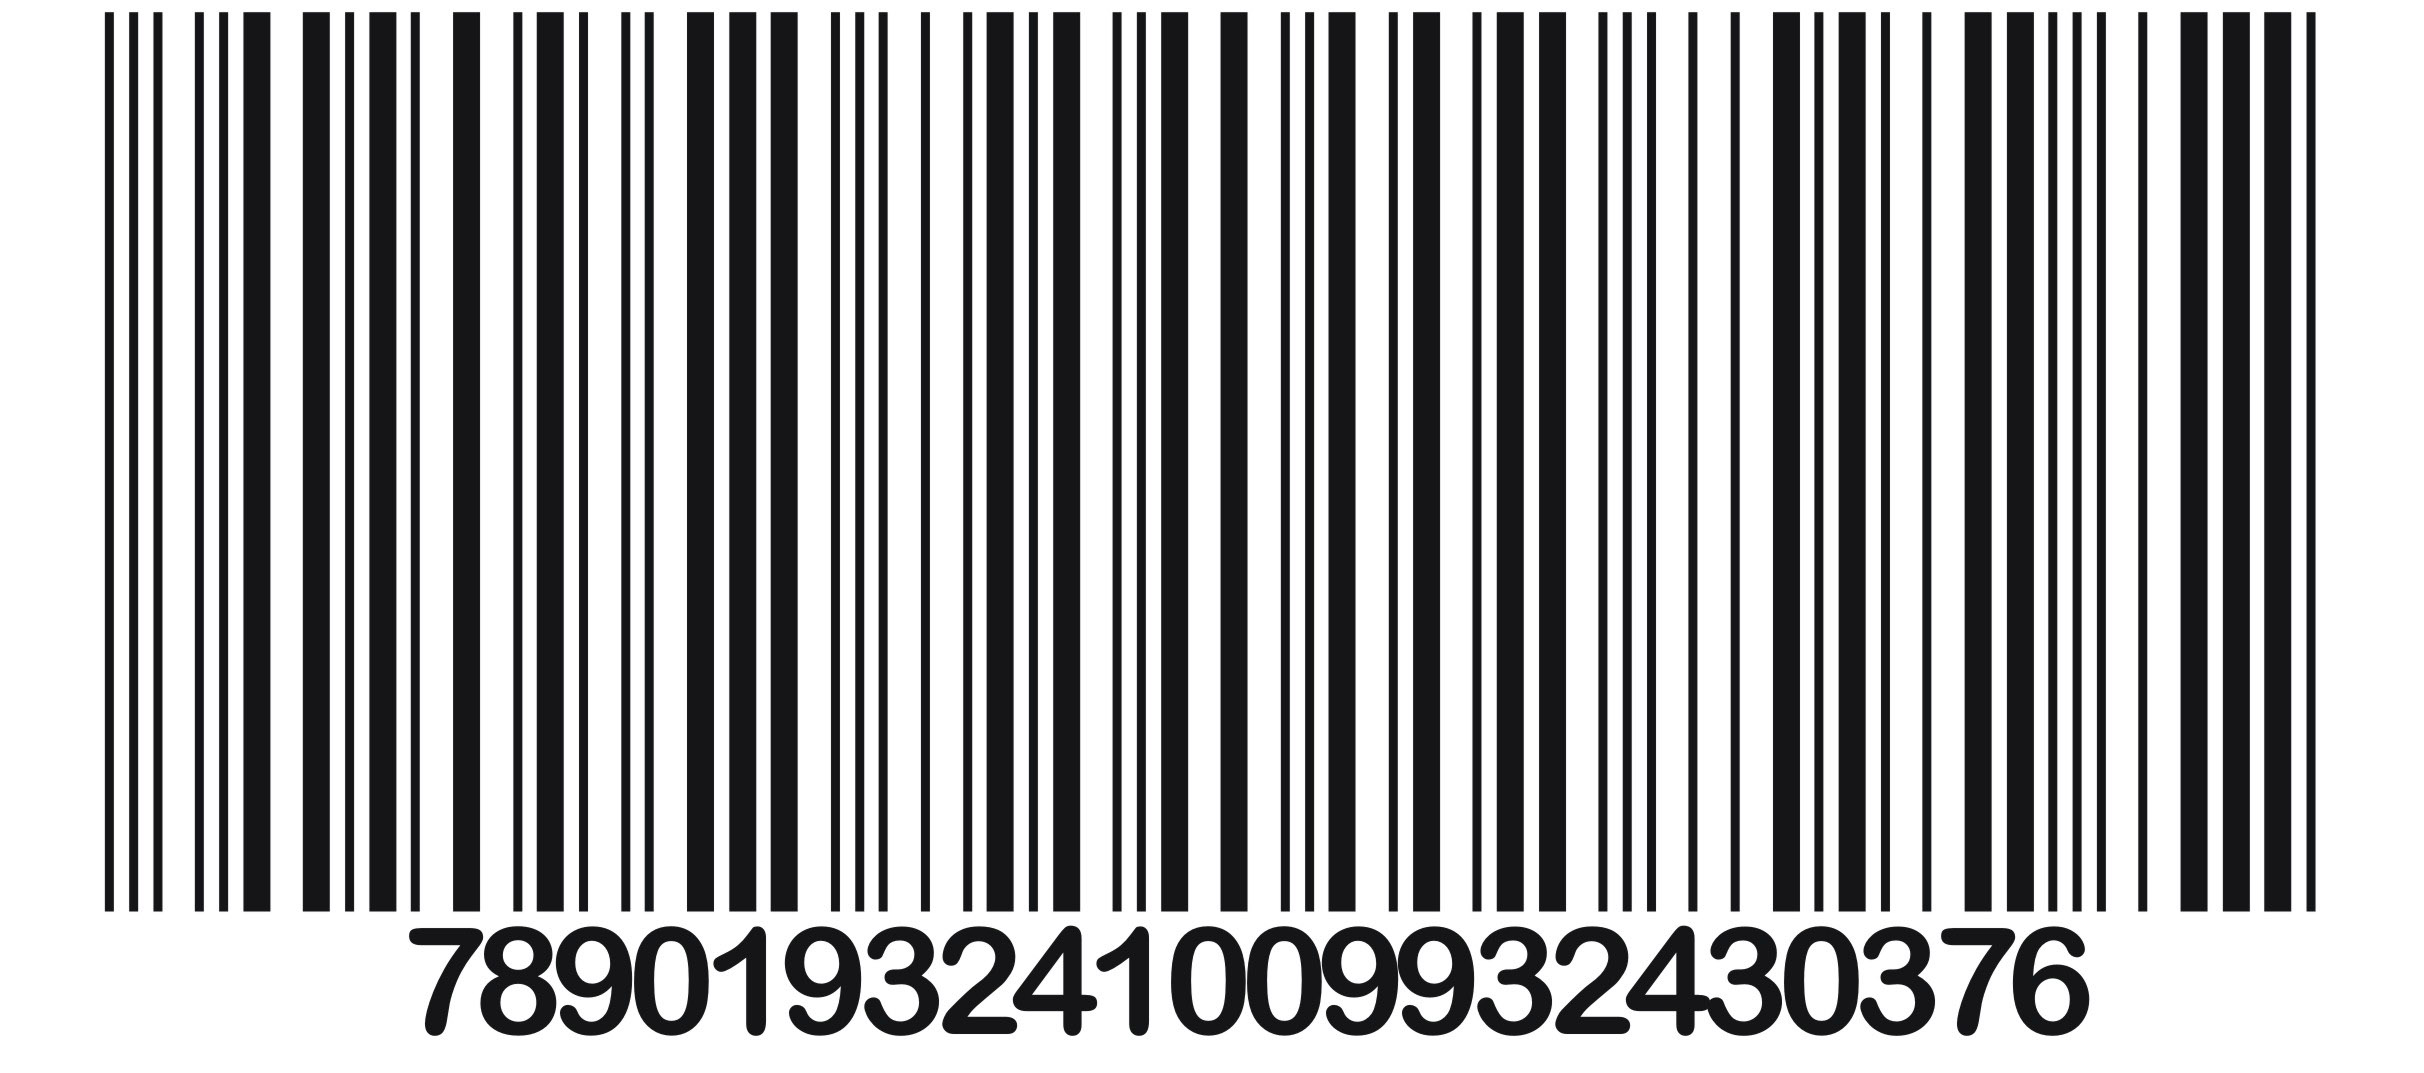 Possibly a barcode for a Black Friday TV?